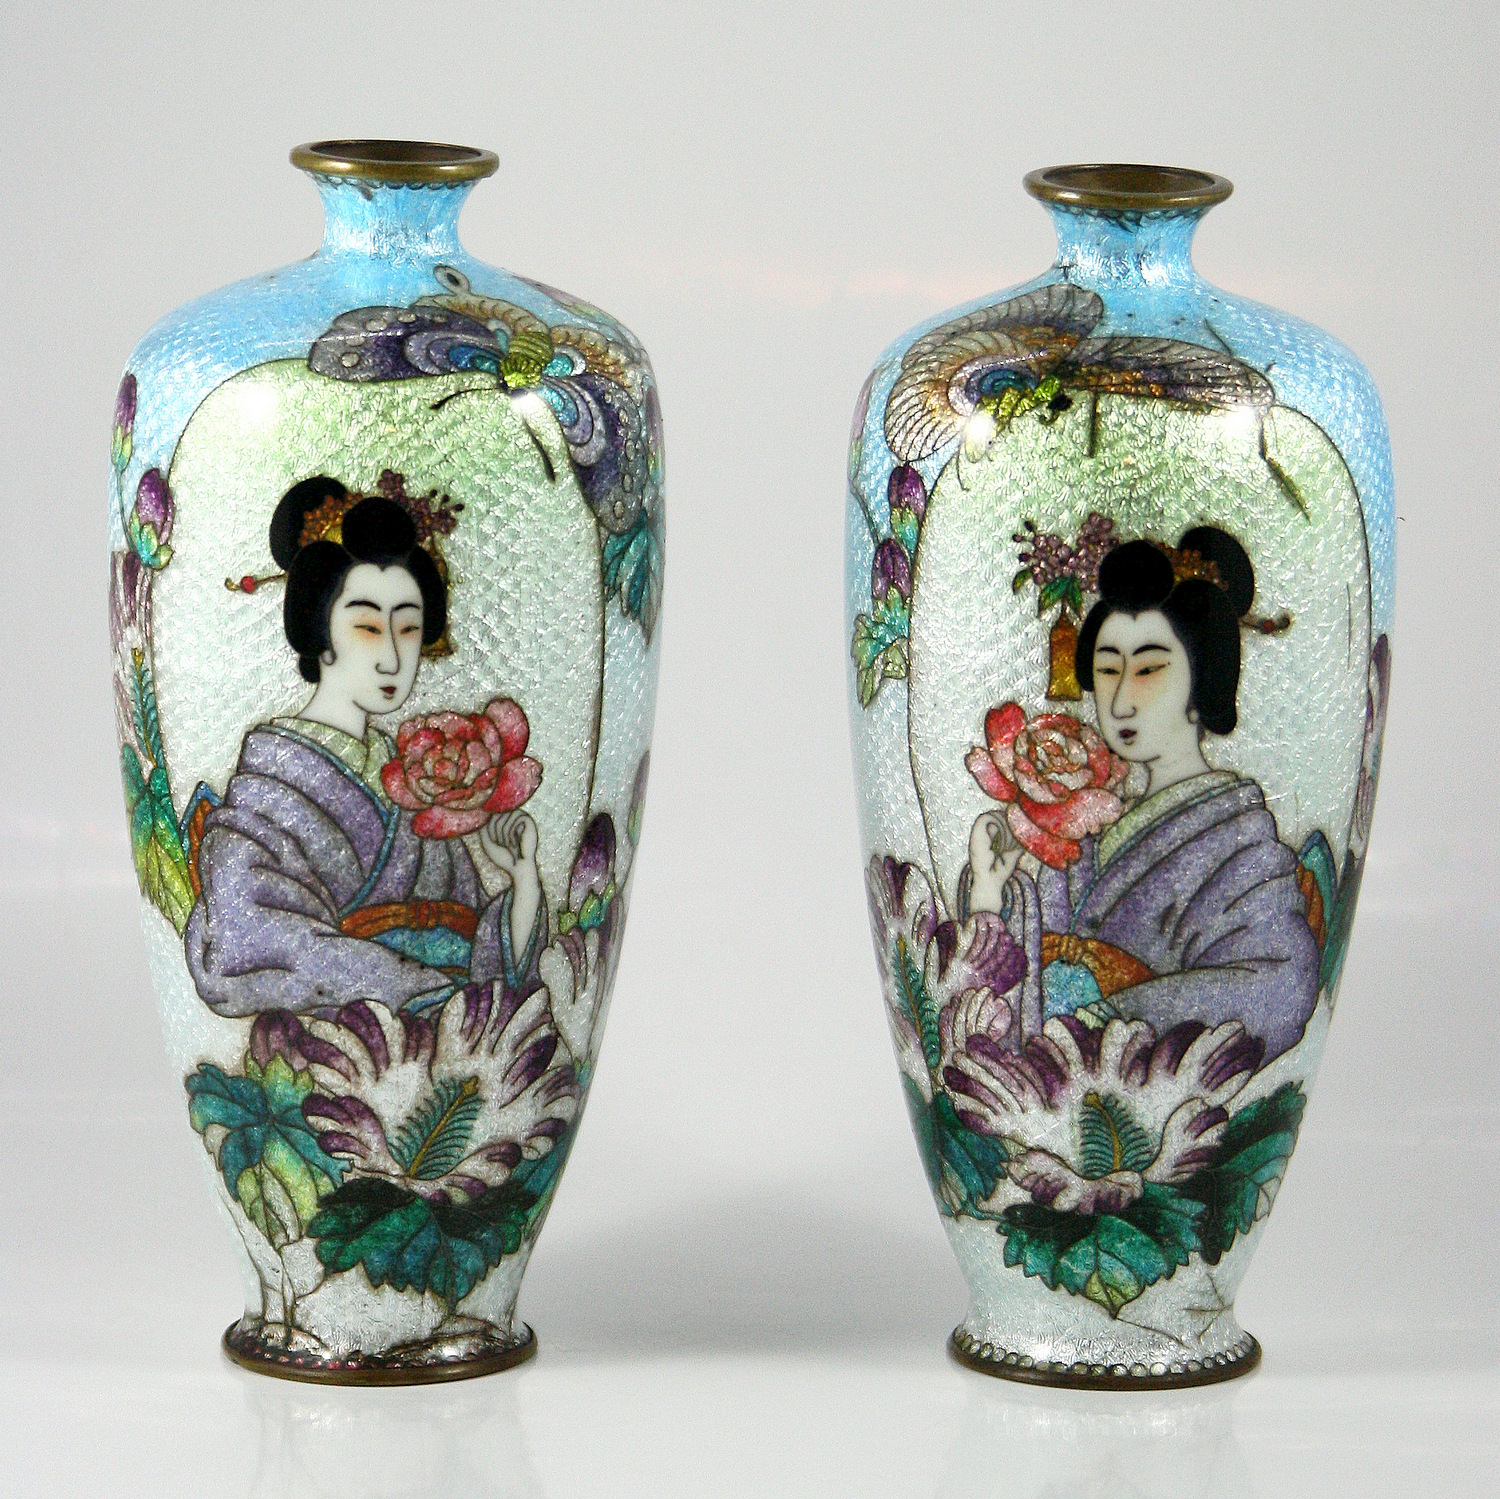 Pair of Japanese Cloisonne Enameled Vases